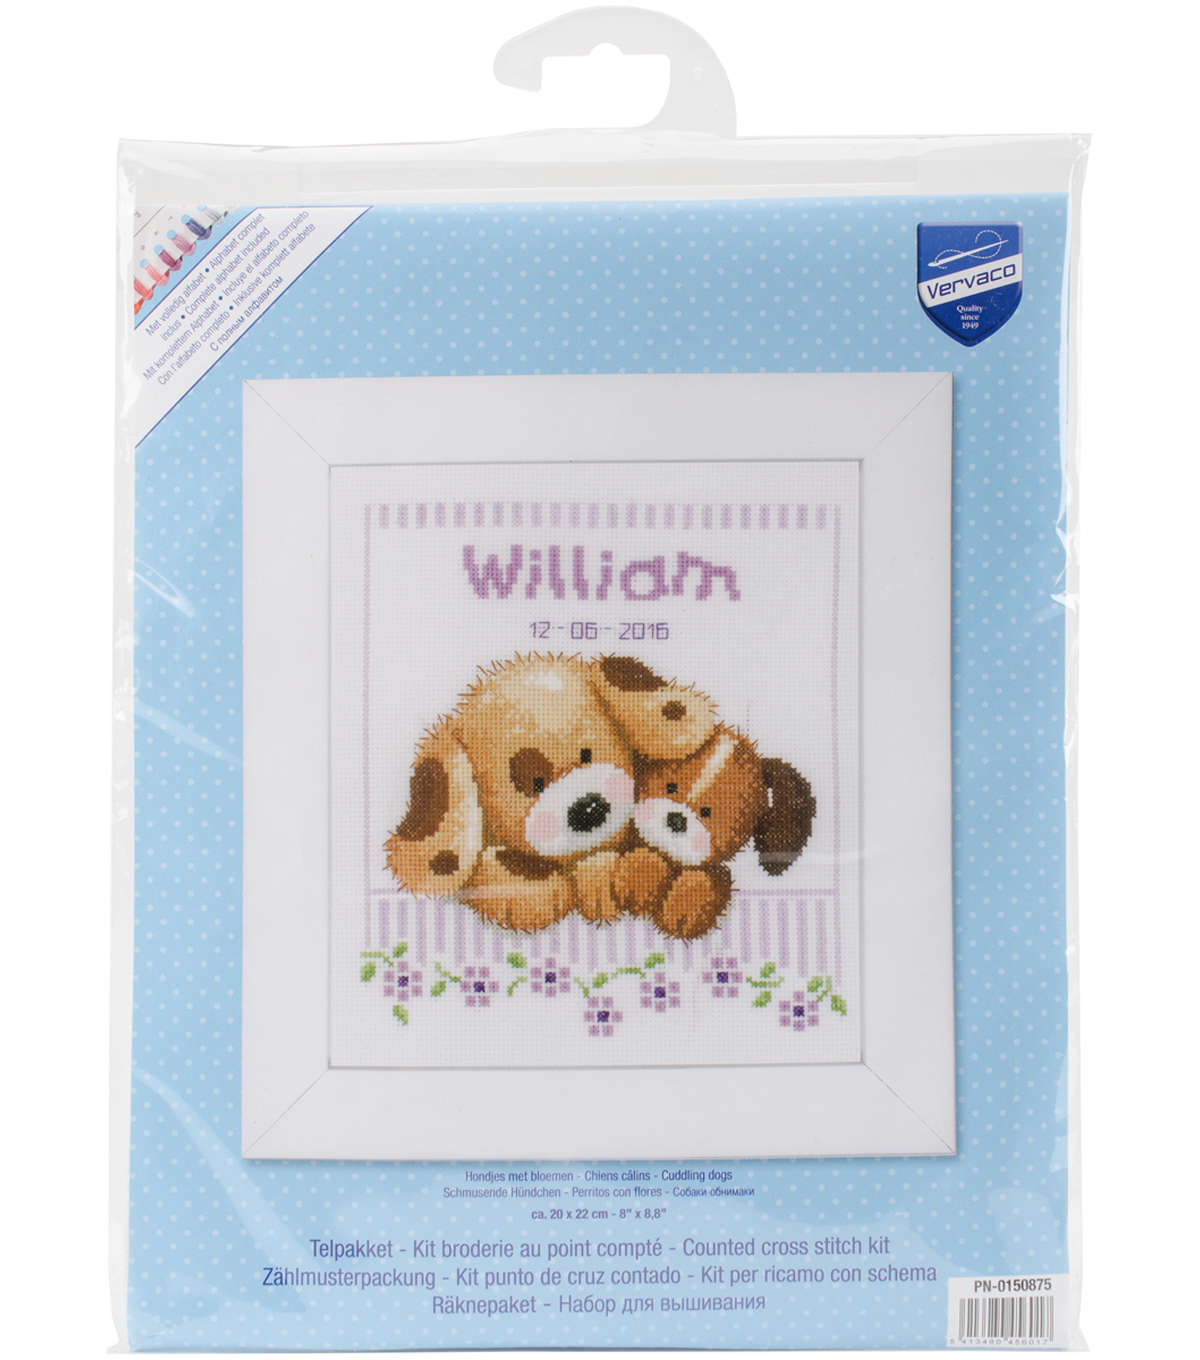 Vervaco 8\u0027\u0027x8.8\u0027\u0027 Aida Counted Cross Stitch Kit-Cuddling Dogs Record